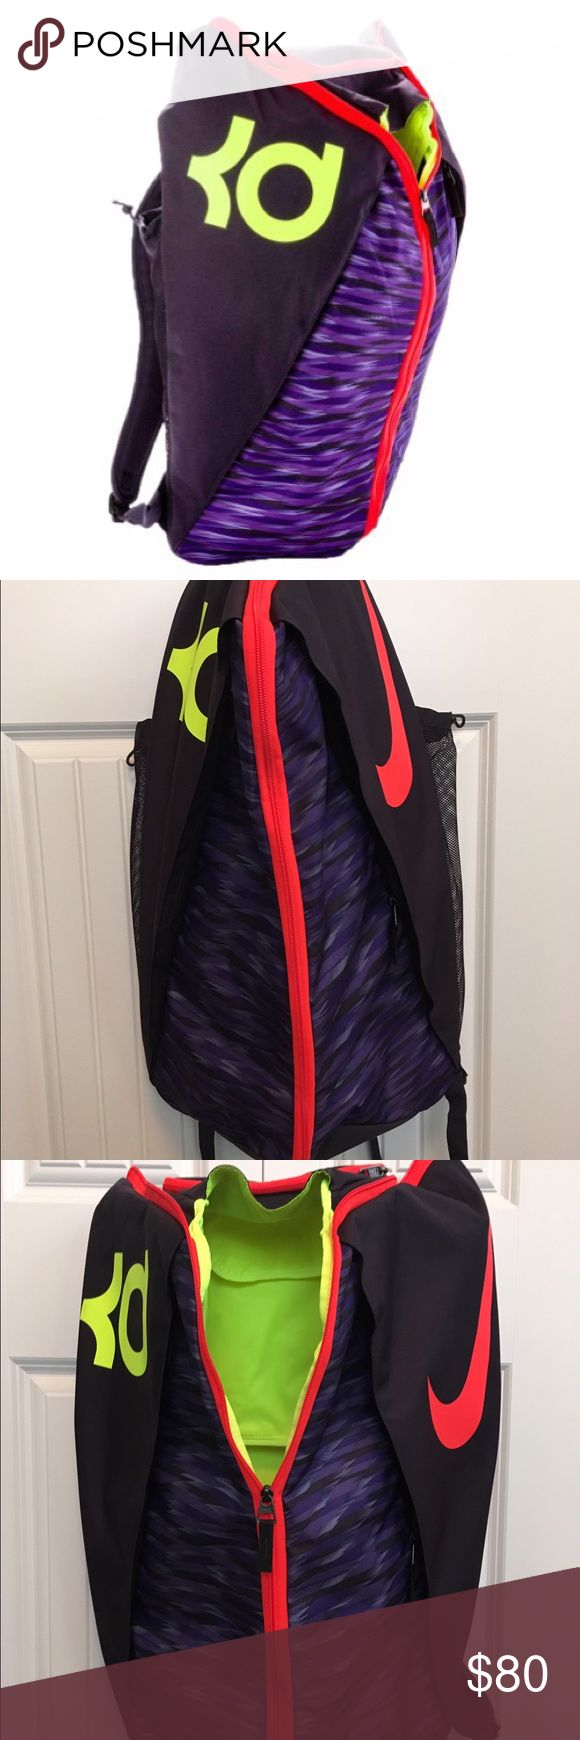 Nike KD Max Air VIII Basketball Backpack Nike KD Max Air VIII Basketball Backpack in purple/neon yellow. This bag fits everything you need to take to the court with you: basketball, pair of shoes, change of clothes, water, towel, hat, and a snack. Not only is it super functional, but it's so cool too! Nike Bags Backpacks